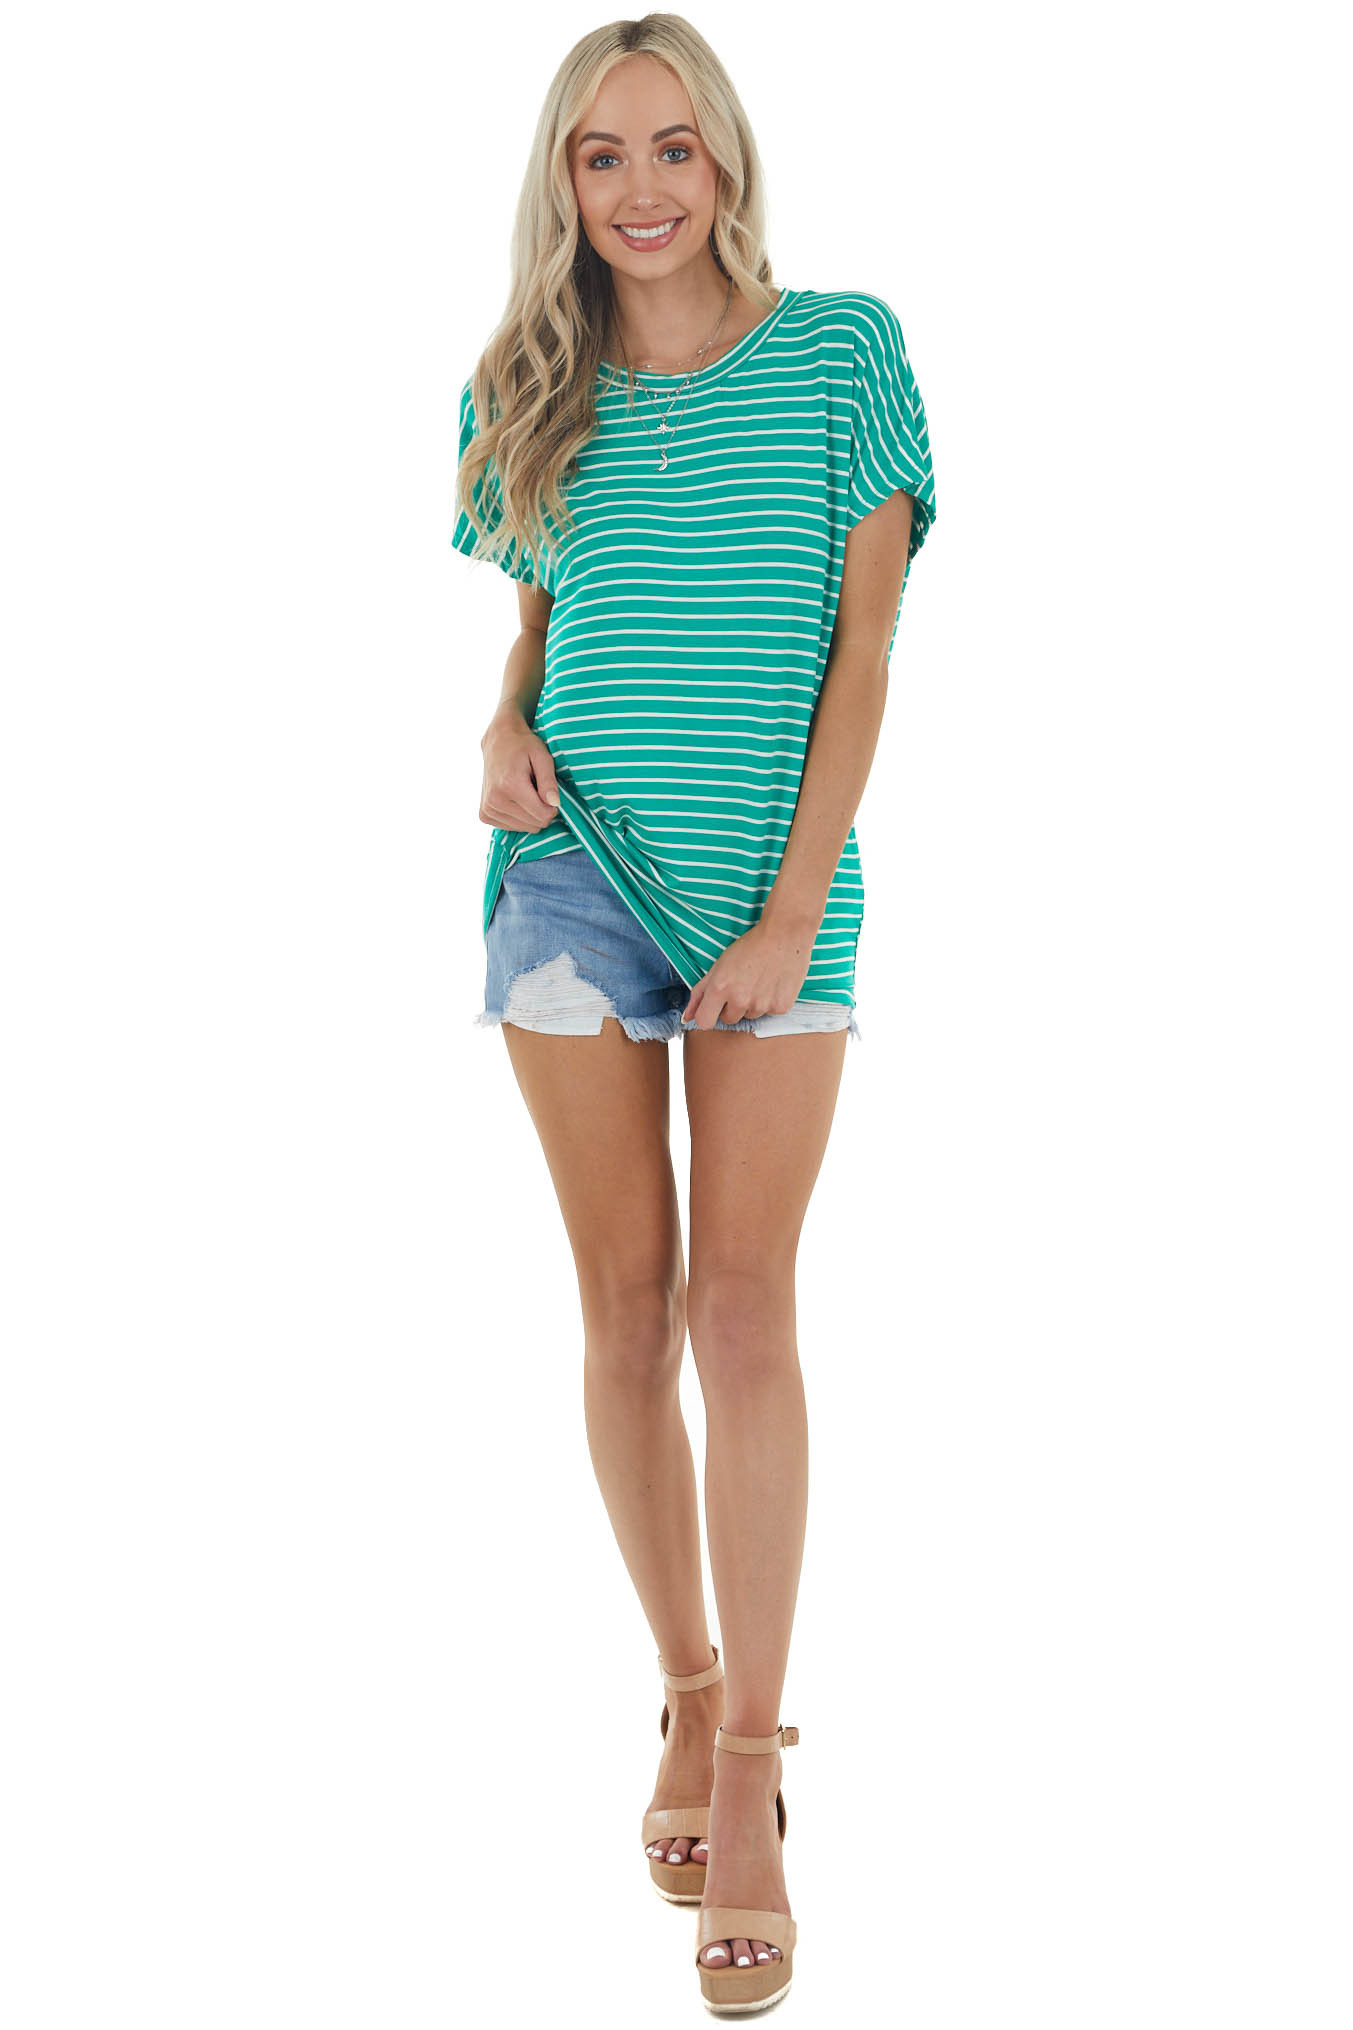 Jade Green Striped Short Sleeve Oversized Soft Knit Top